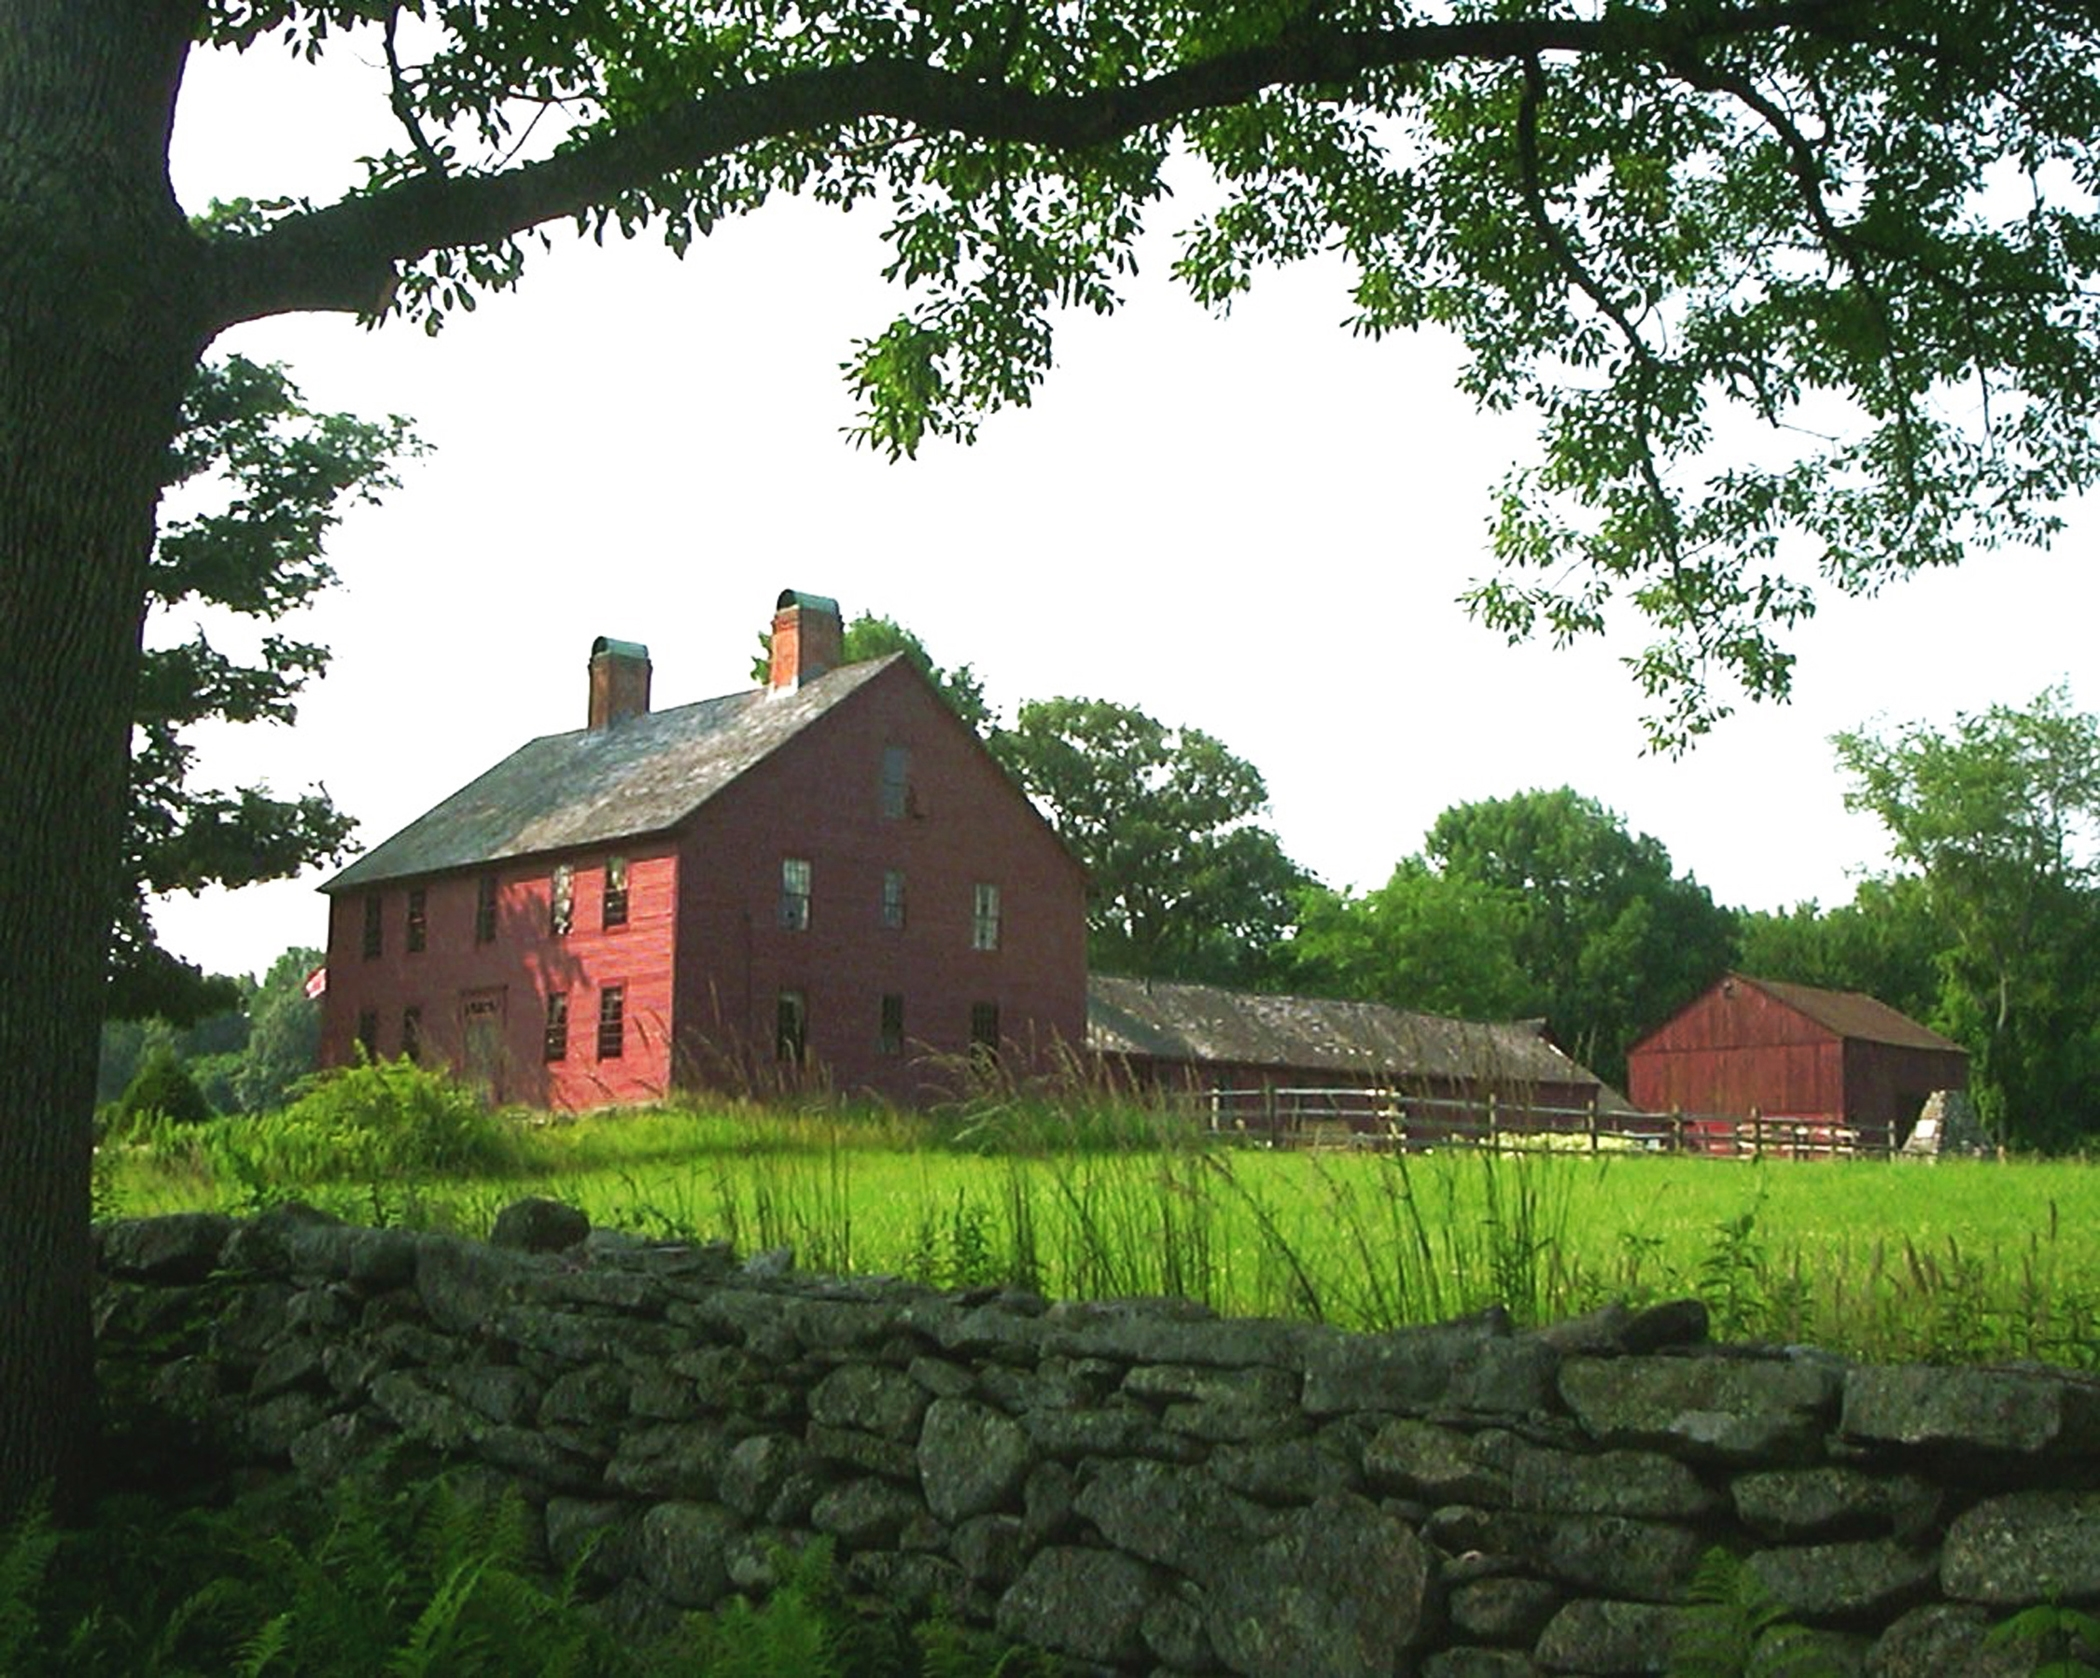 CT Open House Day at the Nathan Hale Homestead